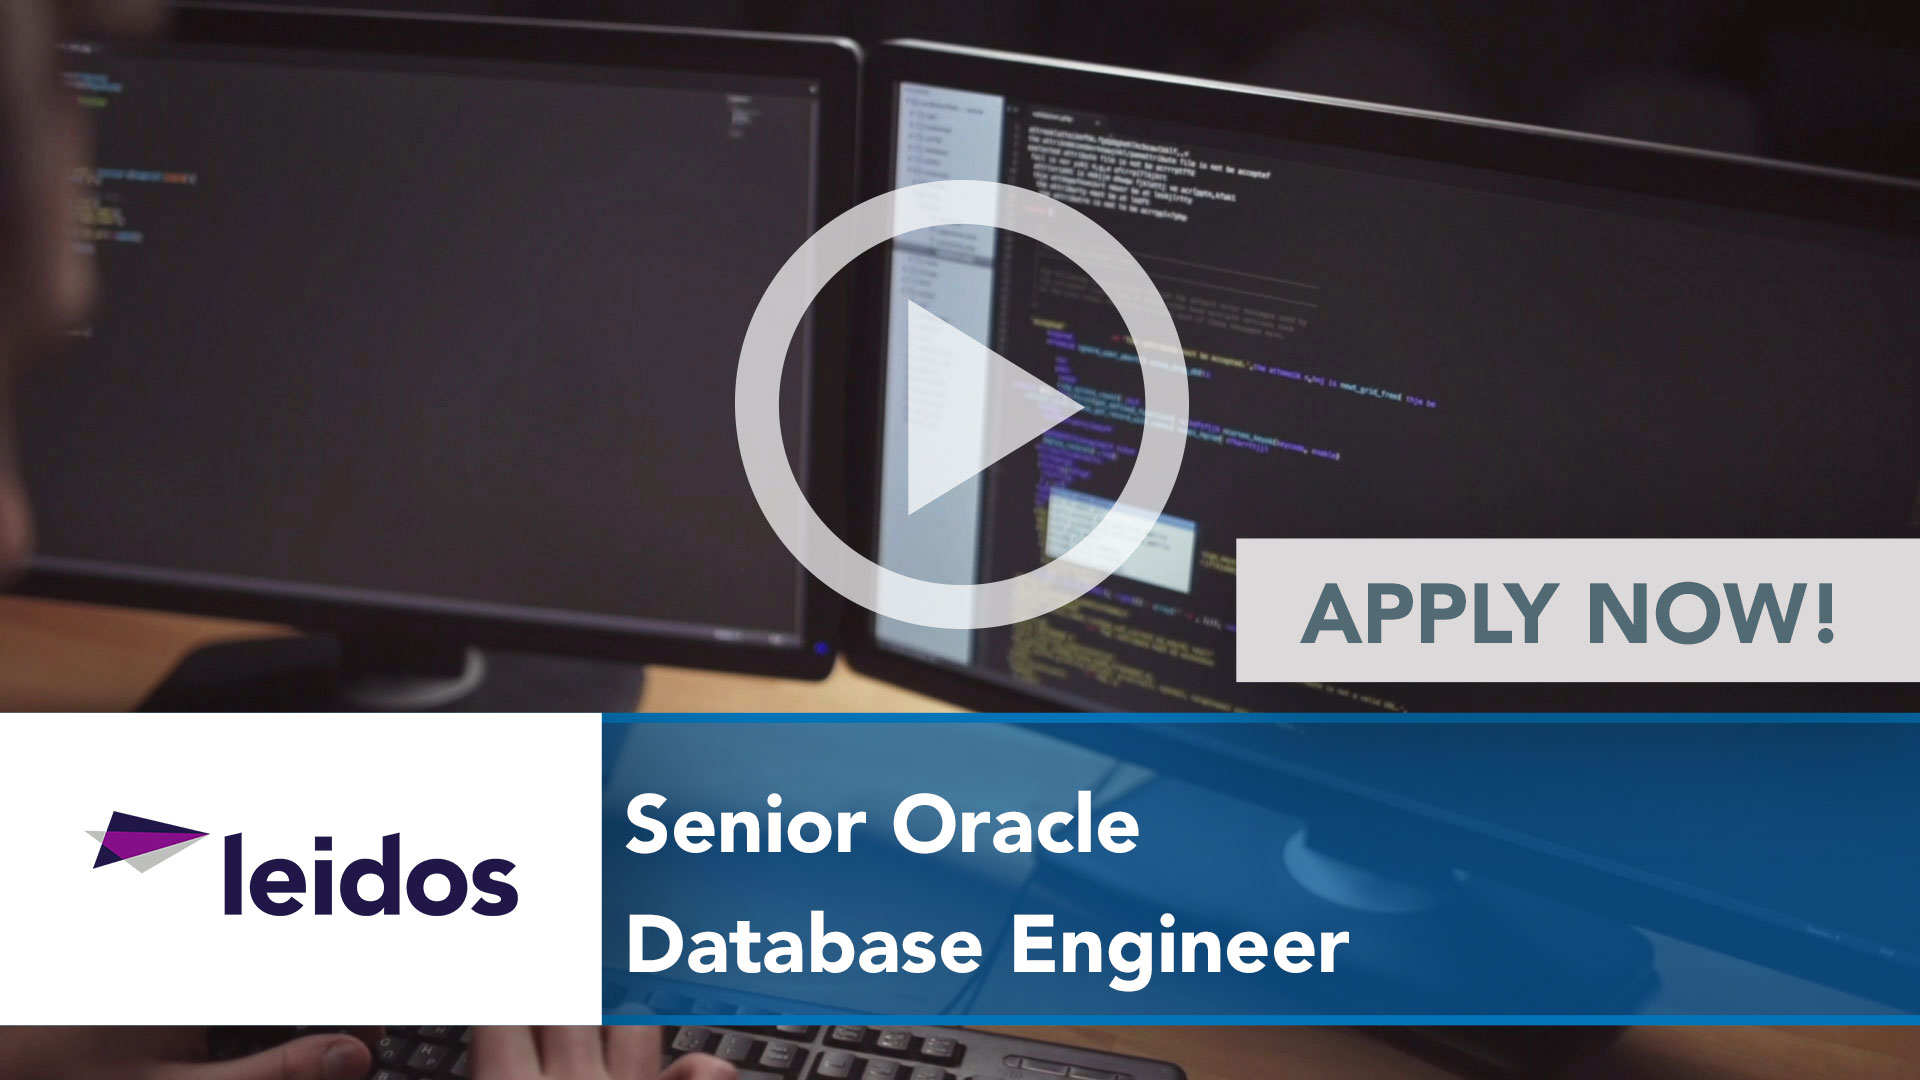 Watch our careers video for available job opening Senior Oracle Database Engineer in National Capital Region with